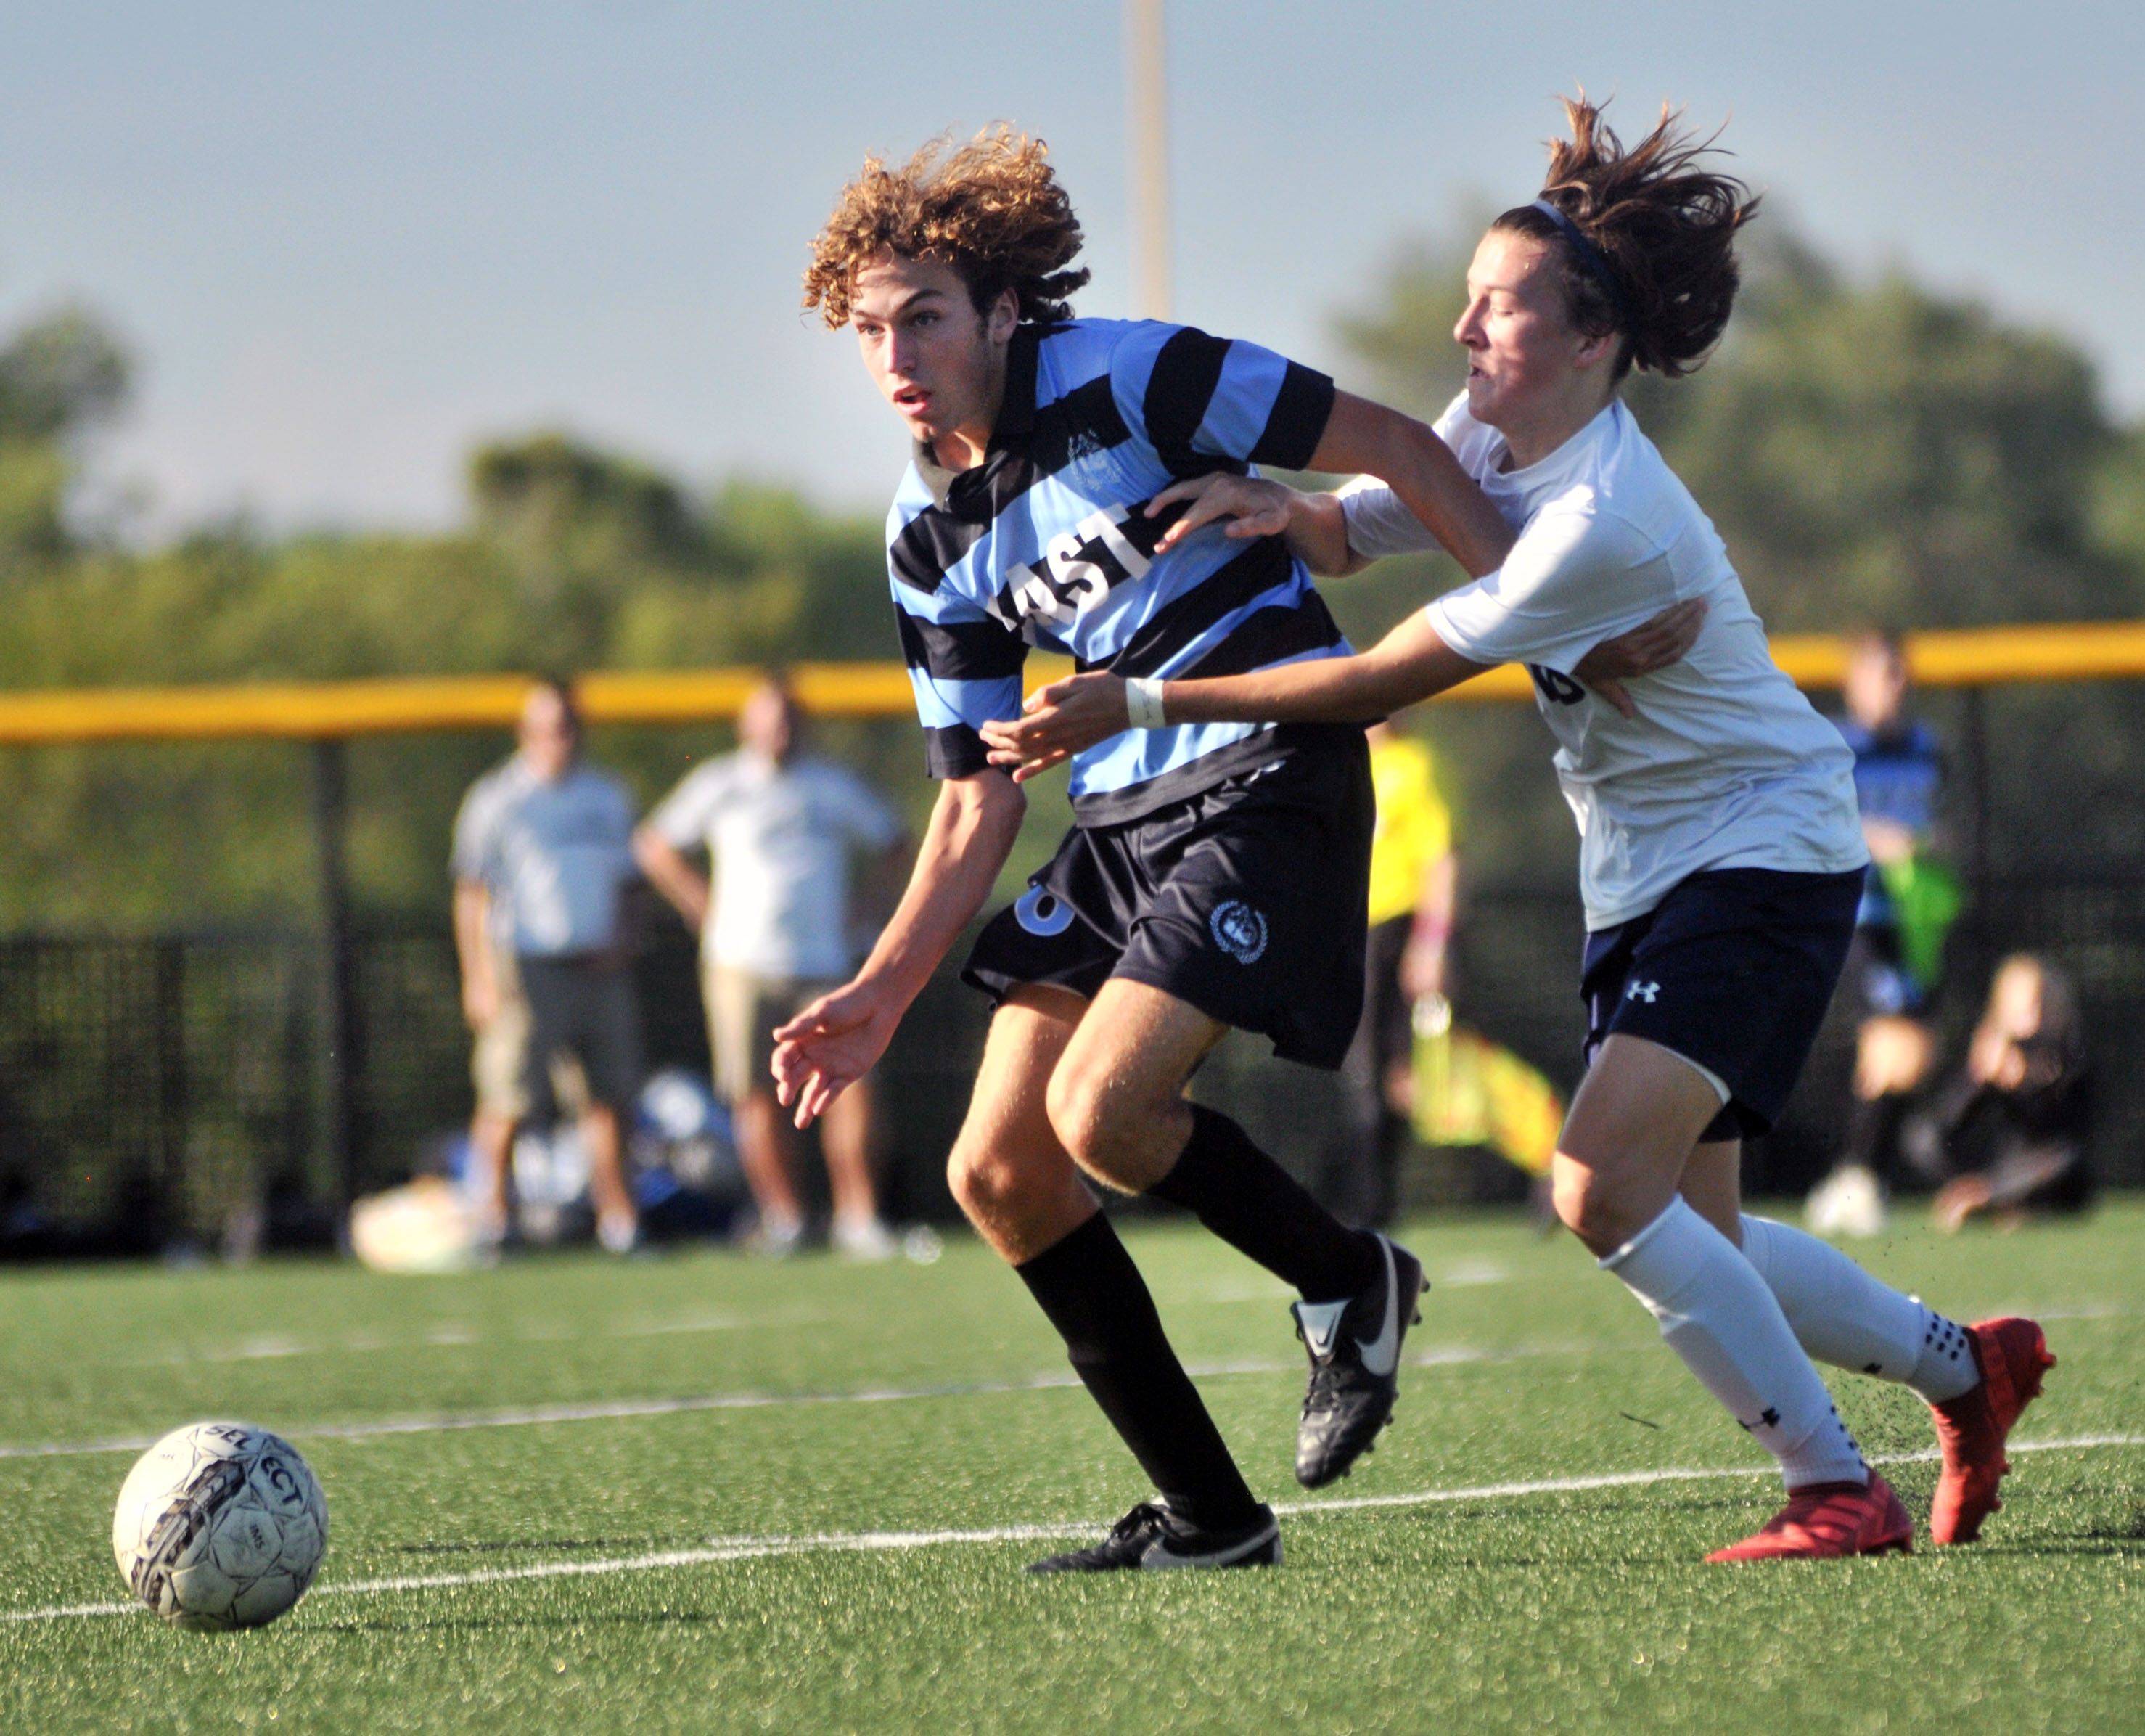 Junior Peter Kohring struggles with a Mill Valley player for the ball. Photo by Ally Griffith